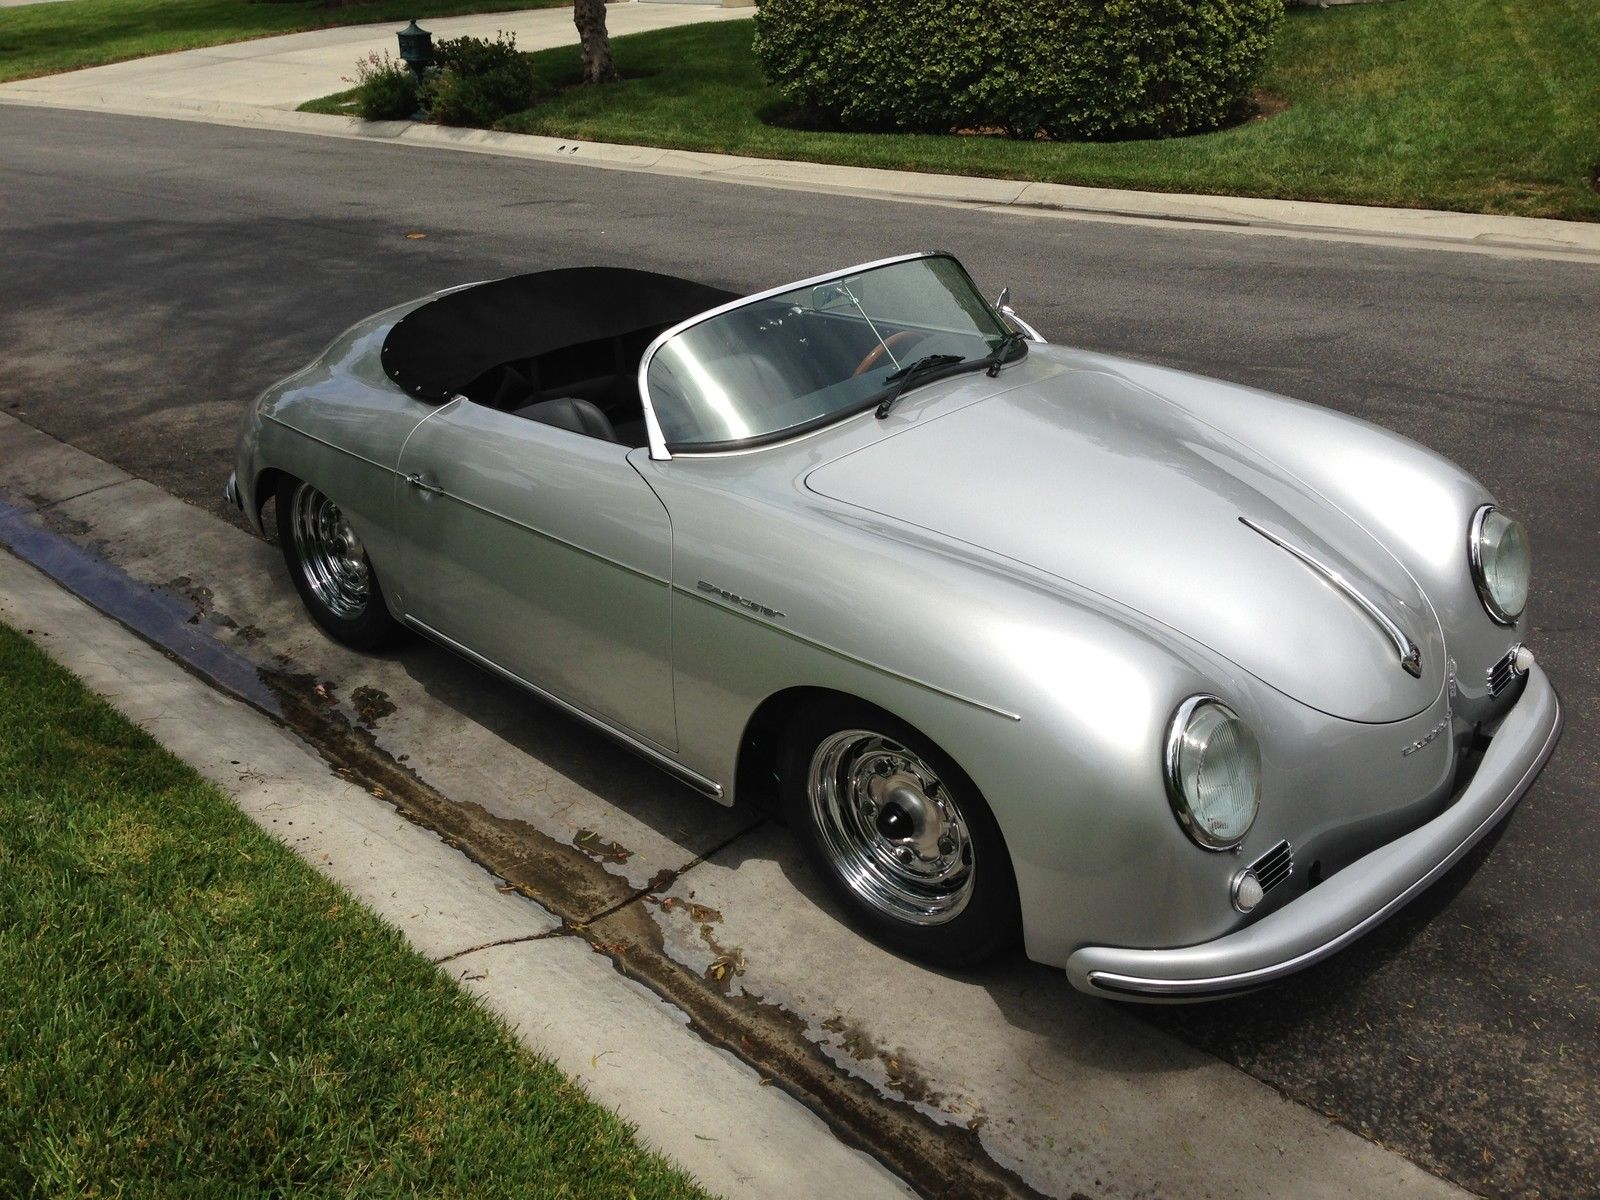 1956 Porsche 356 Speedster Roadster Replica By Vintage